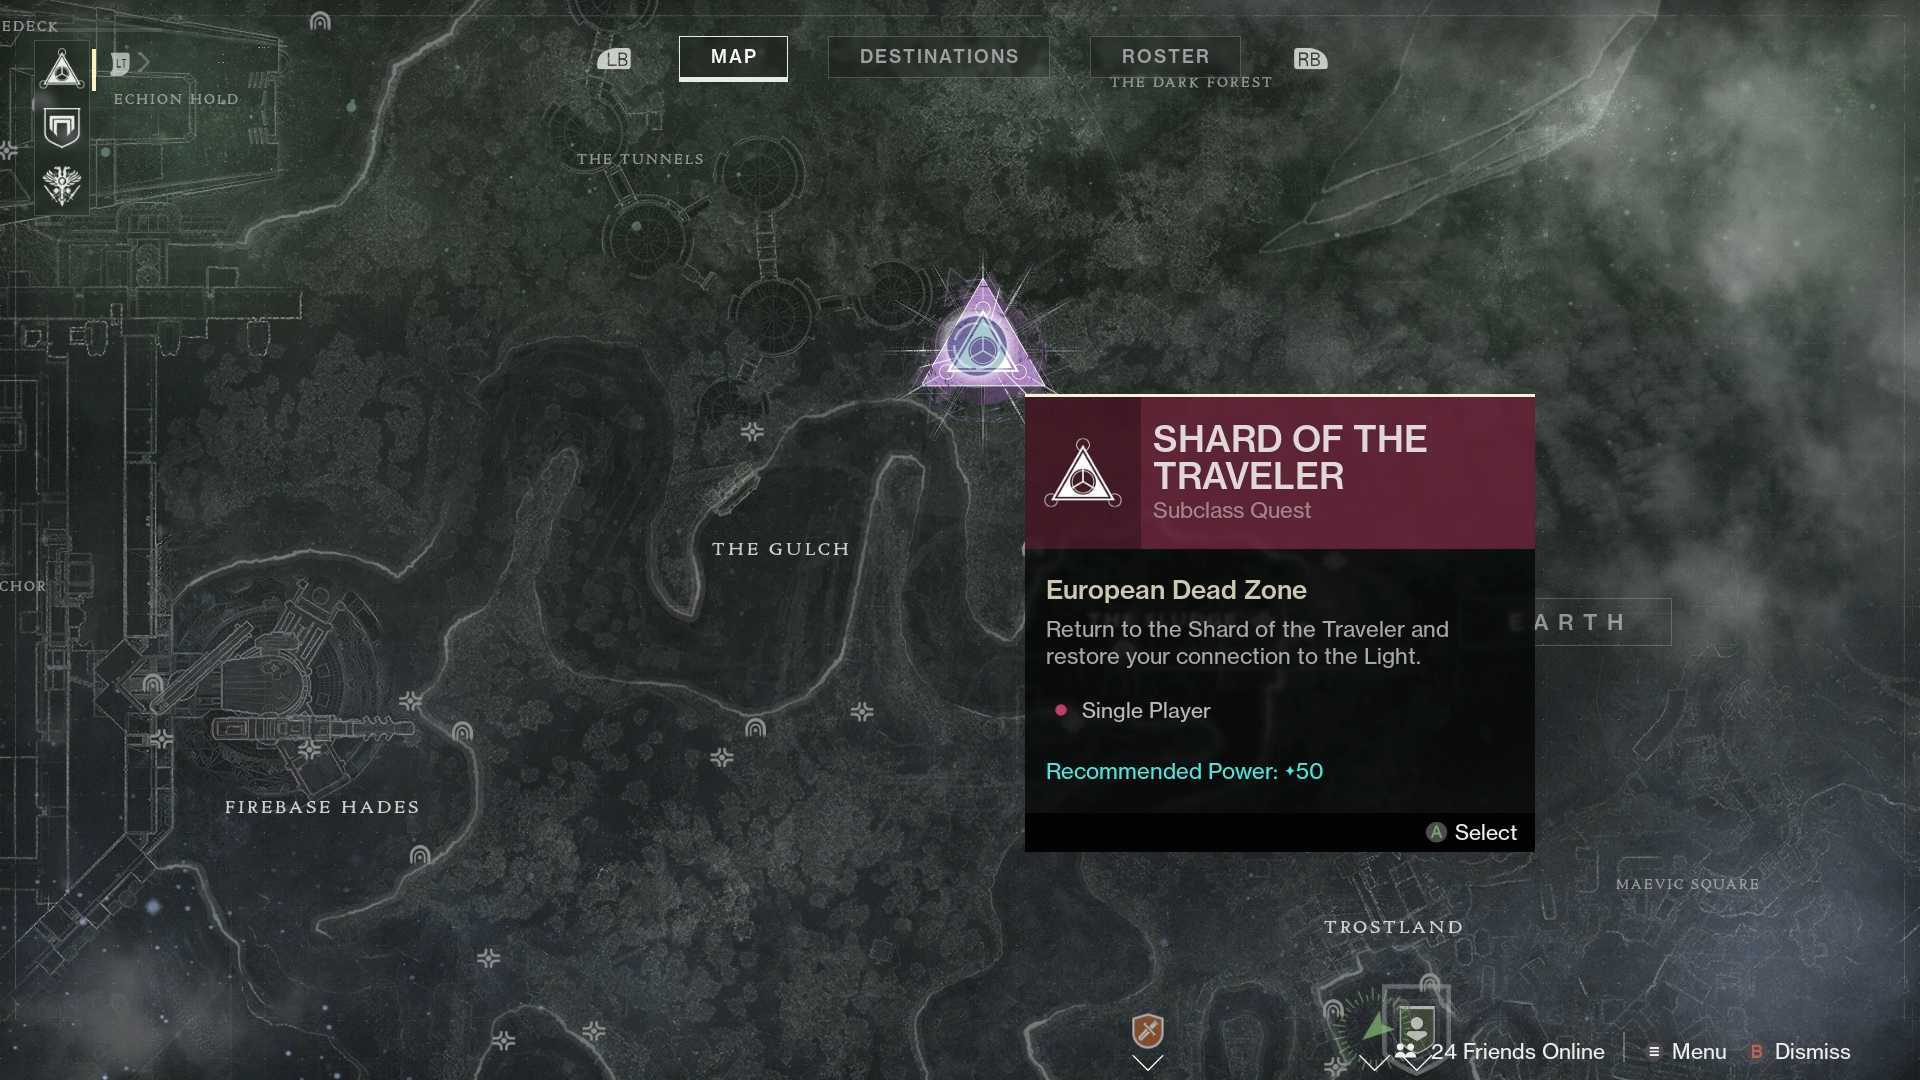 A new mission will appear on your map when the Quest Item is charged.